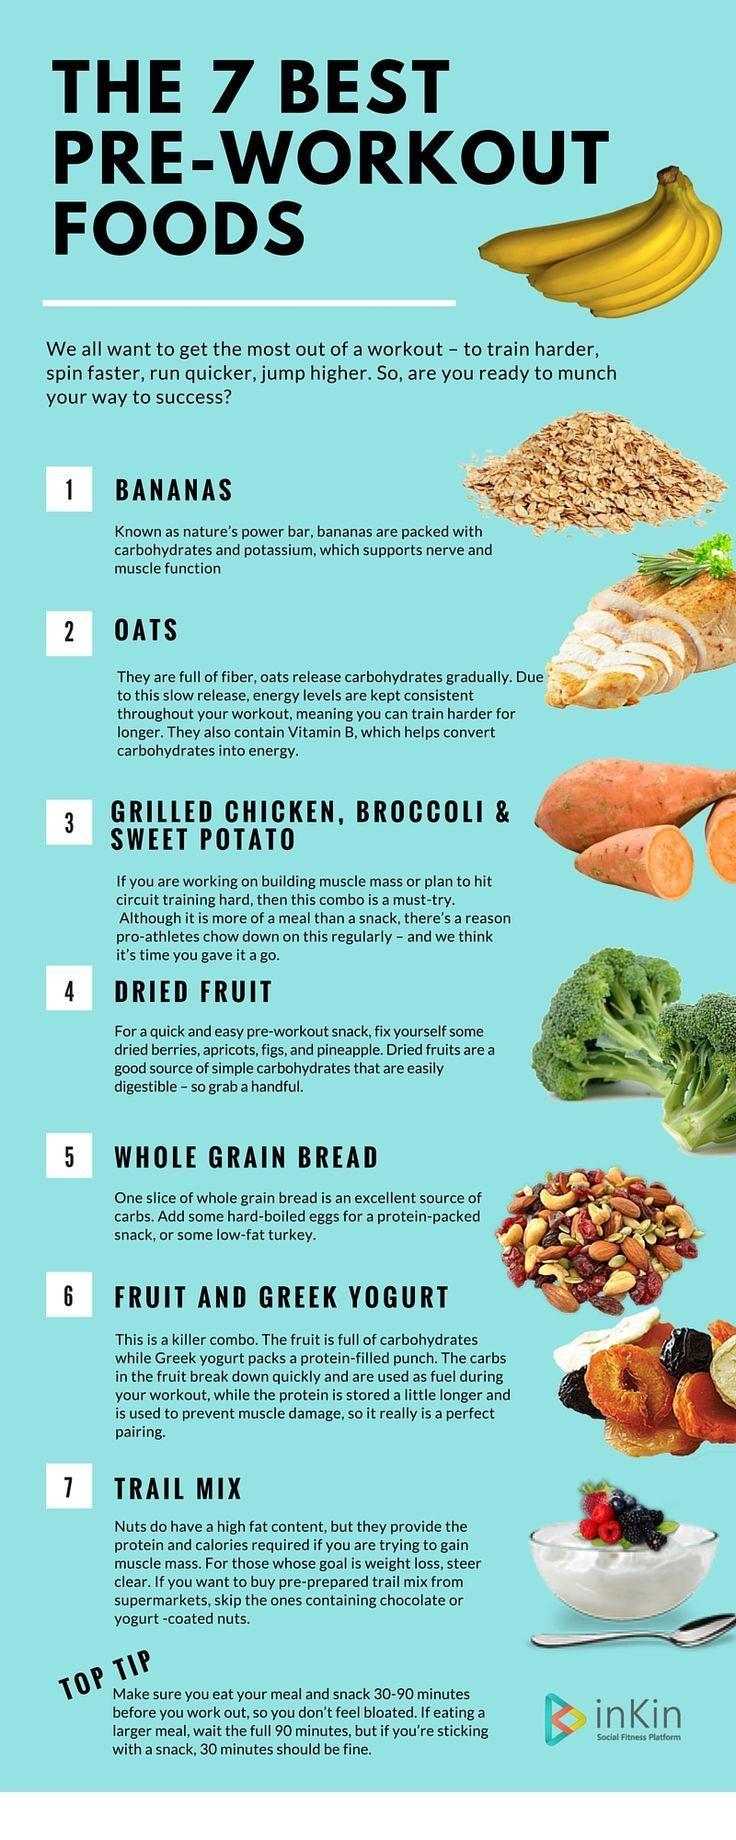 The 7 best pre-workout foods